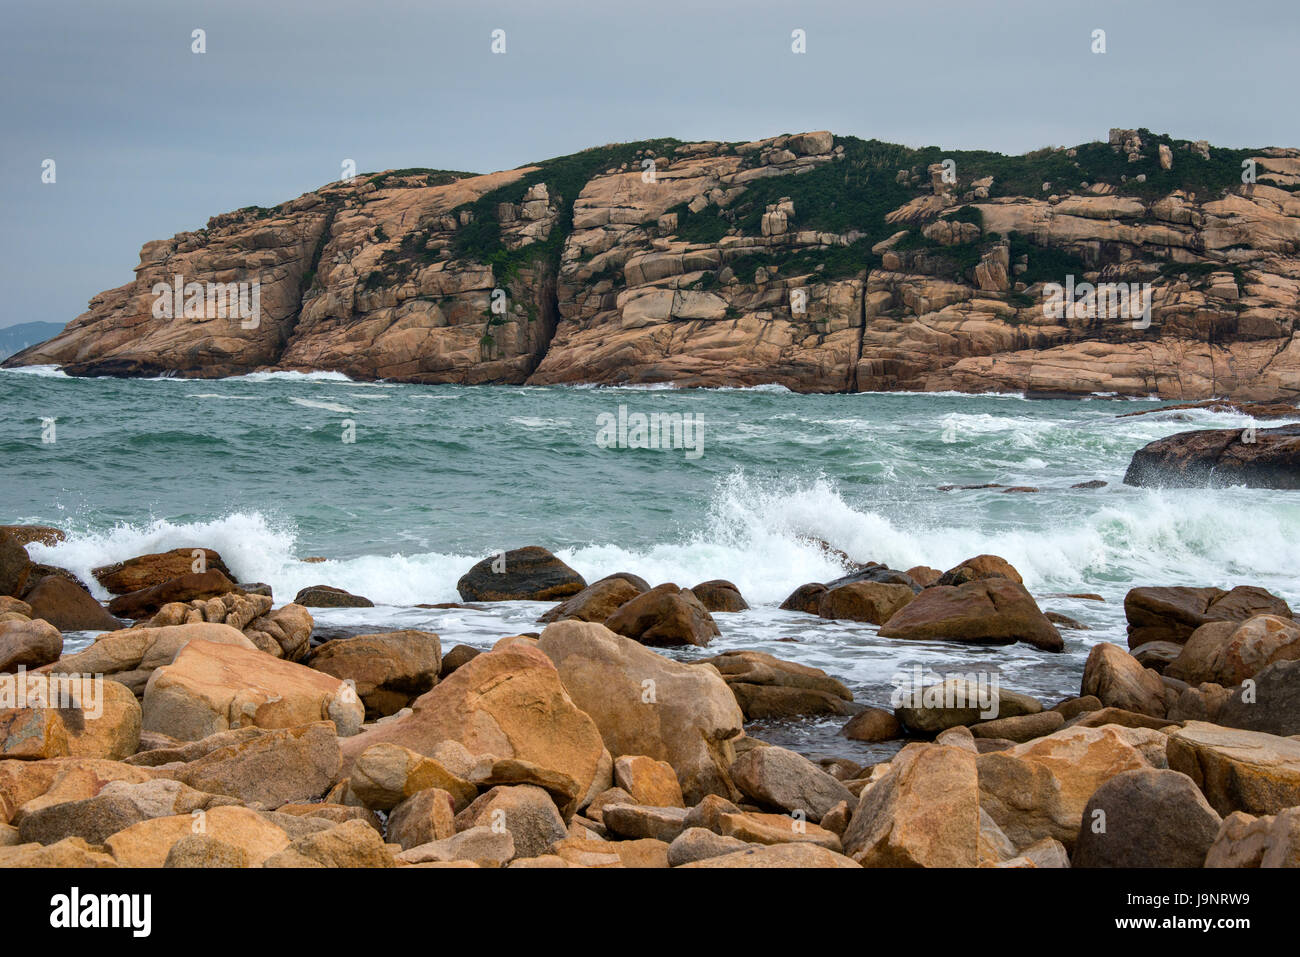 Coastline and South China Sea at Shek-O, Hong Kong - Stock Image